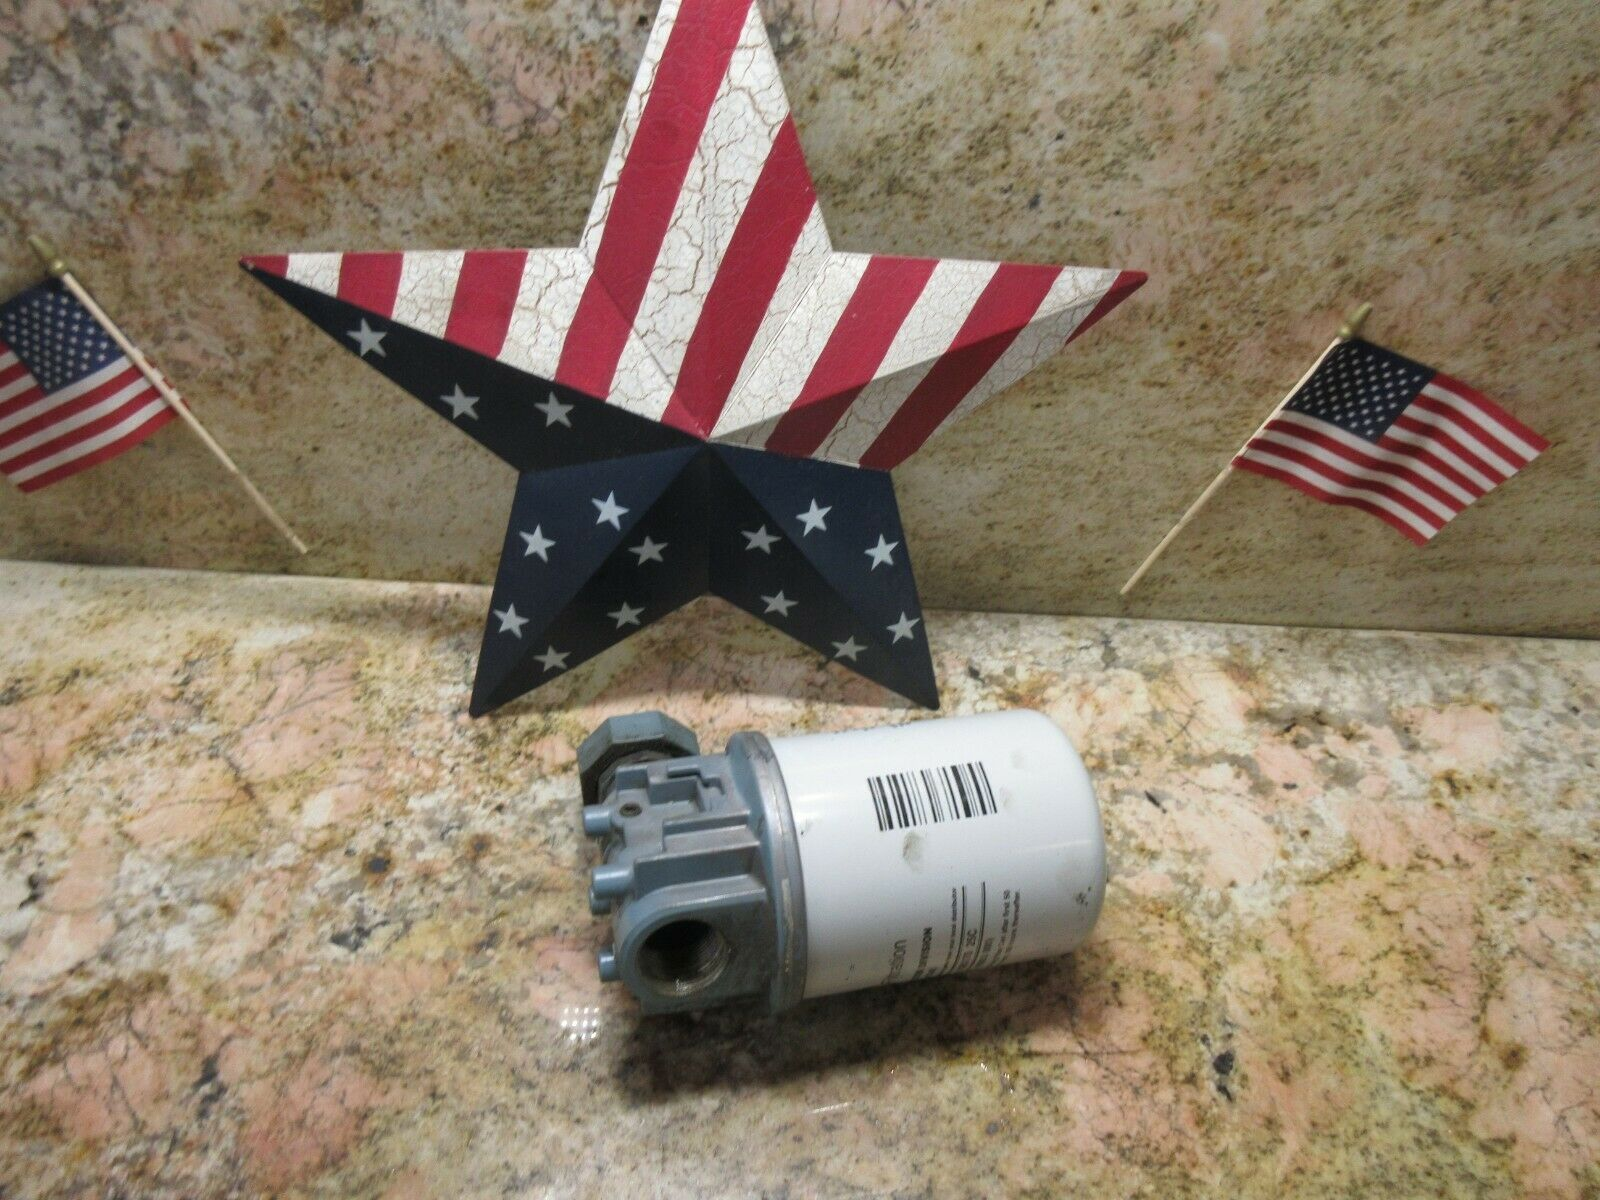 PARKER FILTRATION HYDRAULIC FILTER DIVISION PART NO. 926170 25C HOUSING ASSEMBLY - $69.99